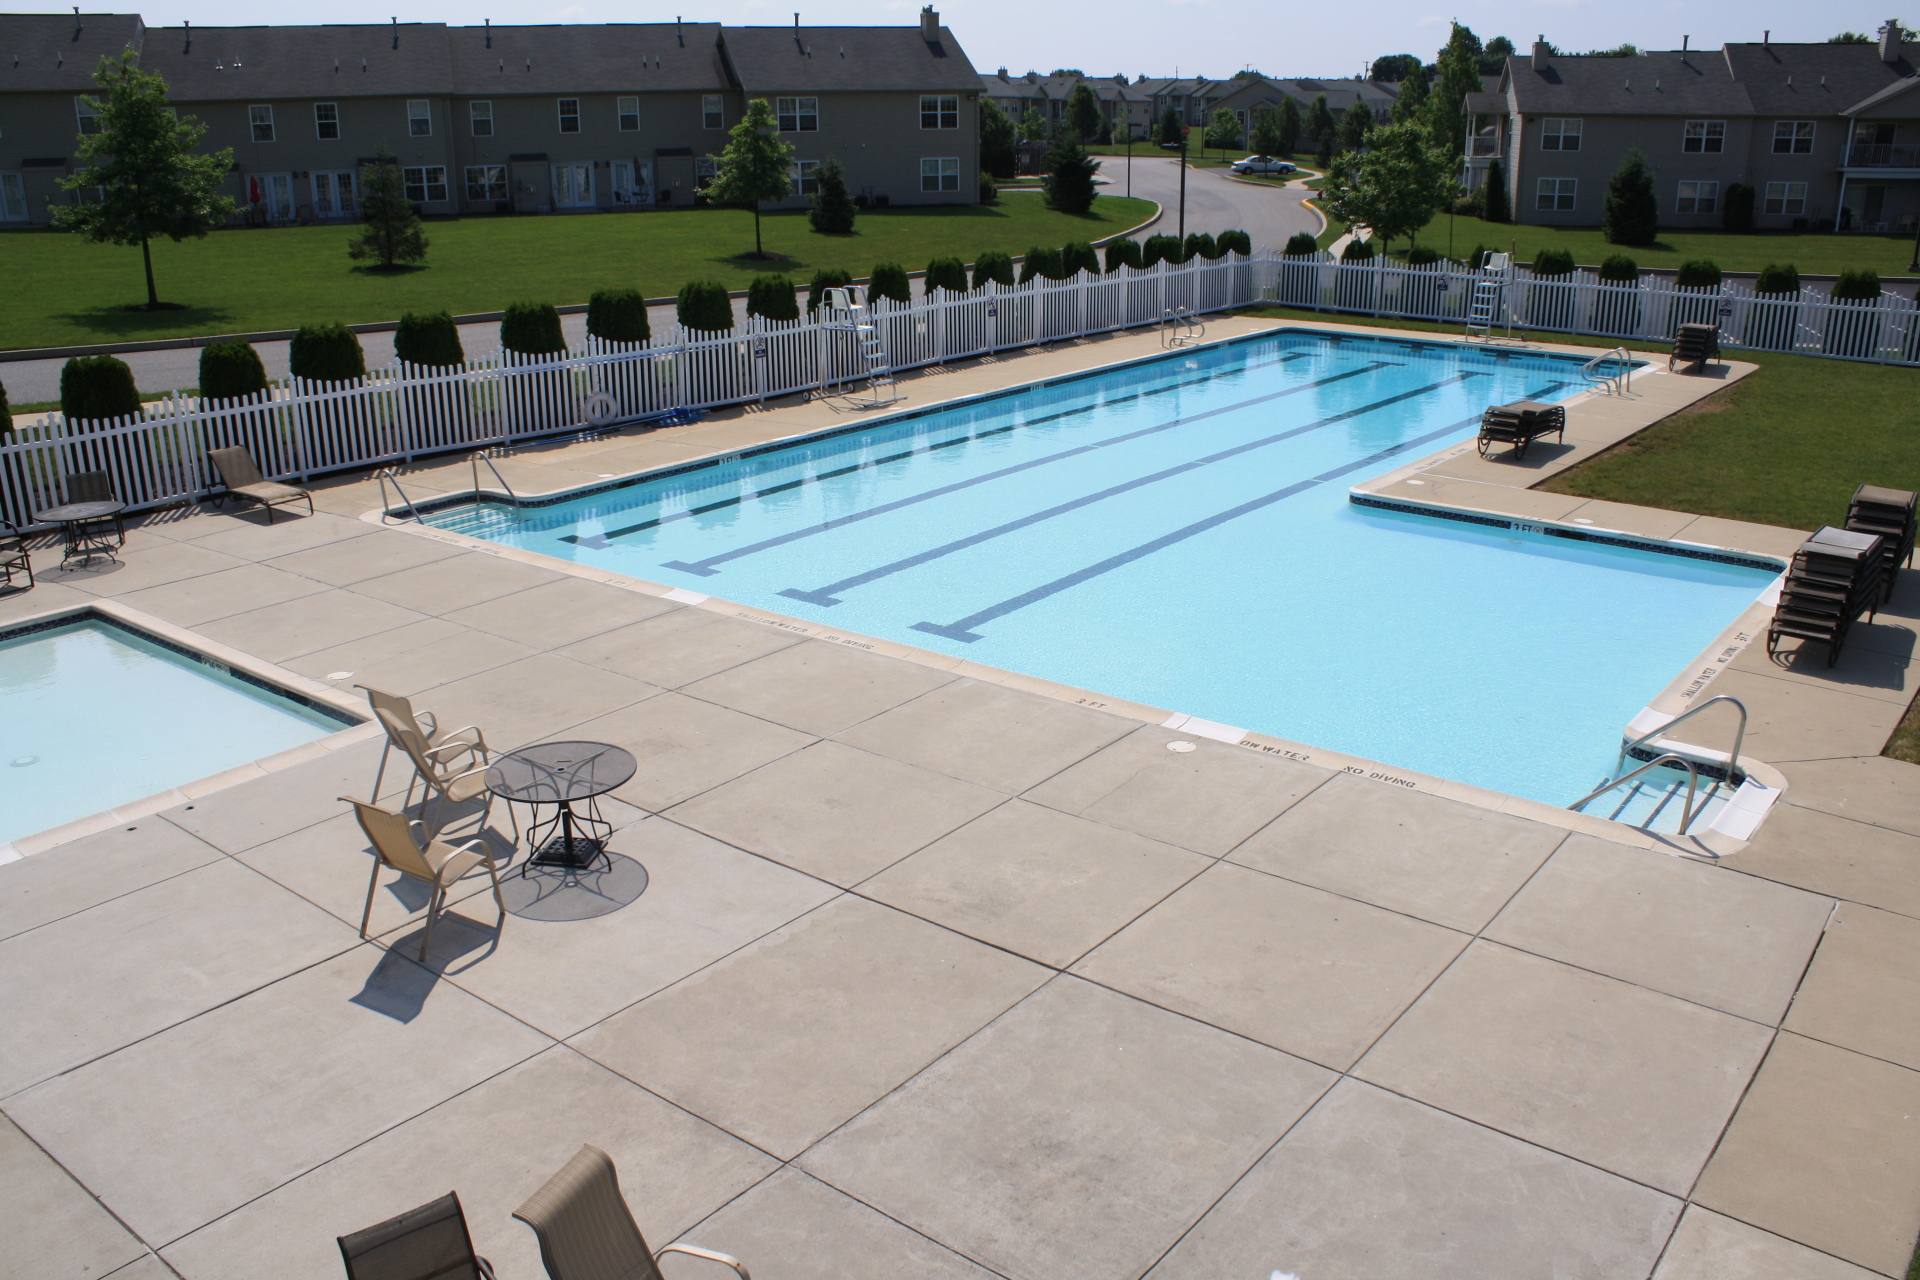 Hershey townhome recreational areas